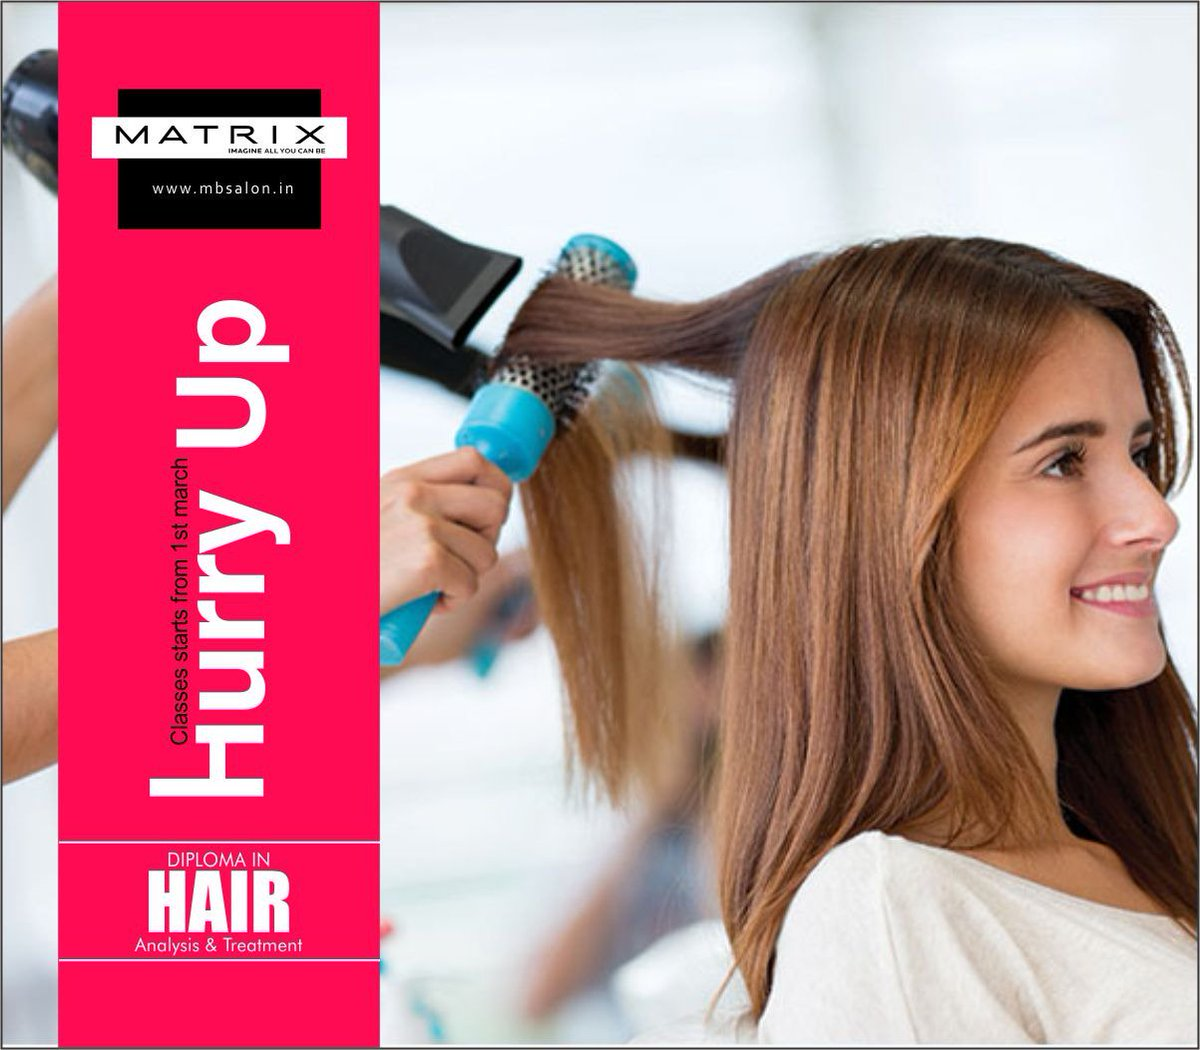 "Matrix Salon on Twitter: ""#Matrix_Salon_Tanda #matrix #matrixsalon"